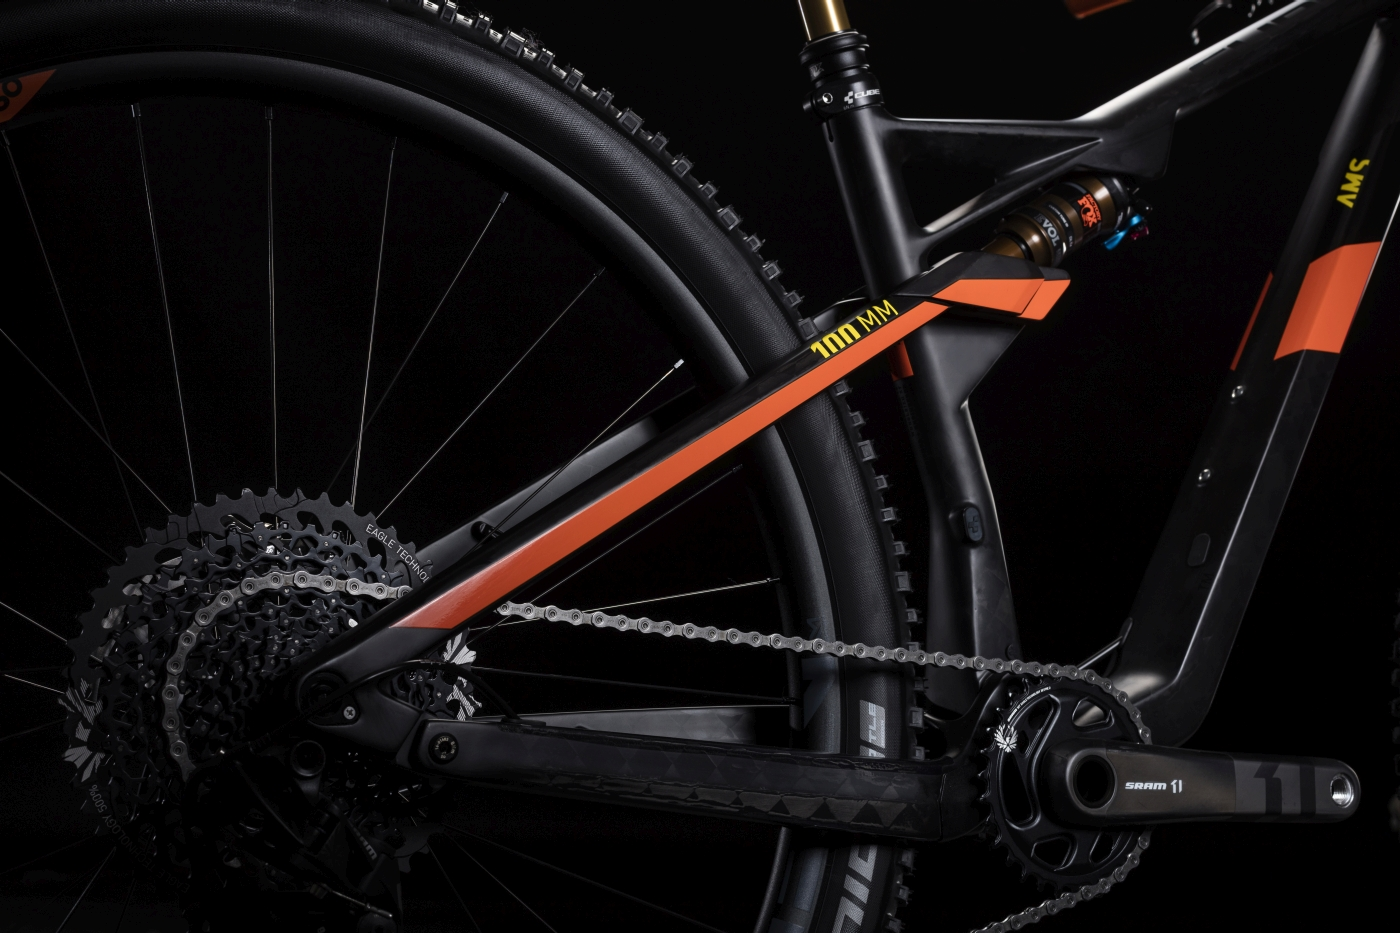 8709d83f8f8 The 2019 CUBE AMS 100 C:68 TM 29, has blended the race-ready performance of  our AMS 100 platform with trail-ready components like a 120mm travel Fox 34  fork ...